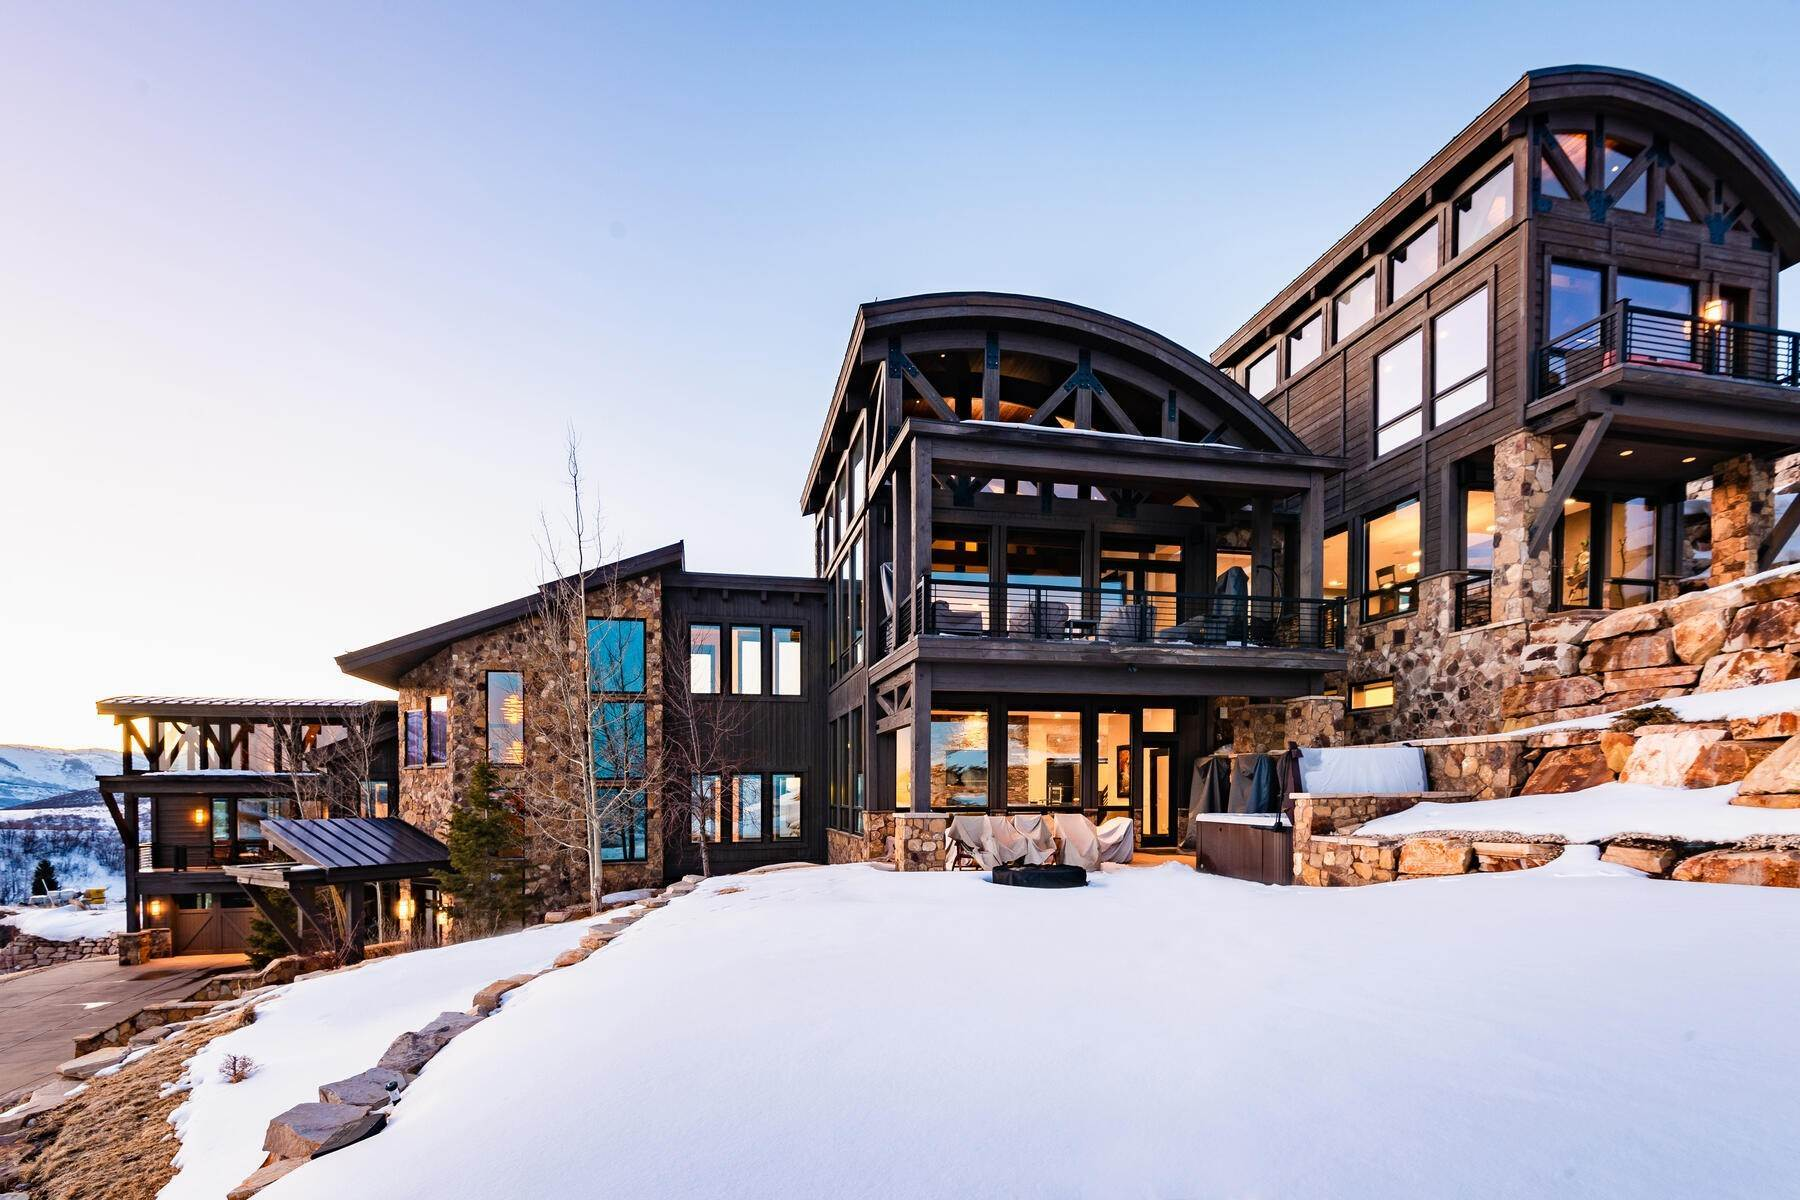 Single Family Homes for Sale at Deer Valley Mountain Contemporary Masterpiece 11380 N Snowtop Rd Park City, Utah 84060 United States